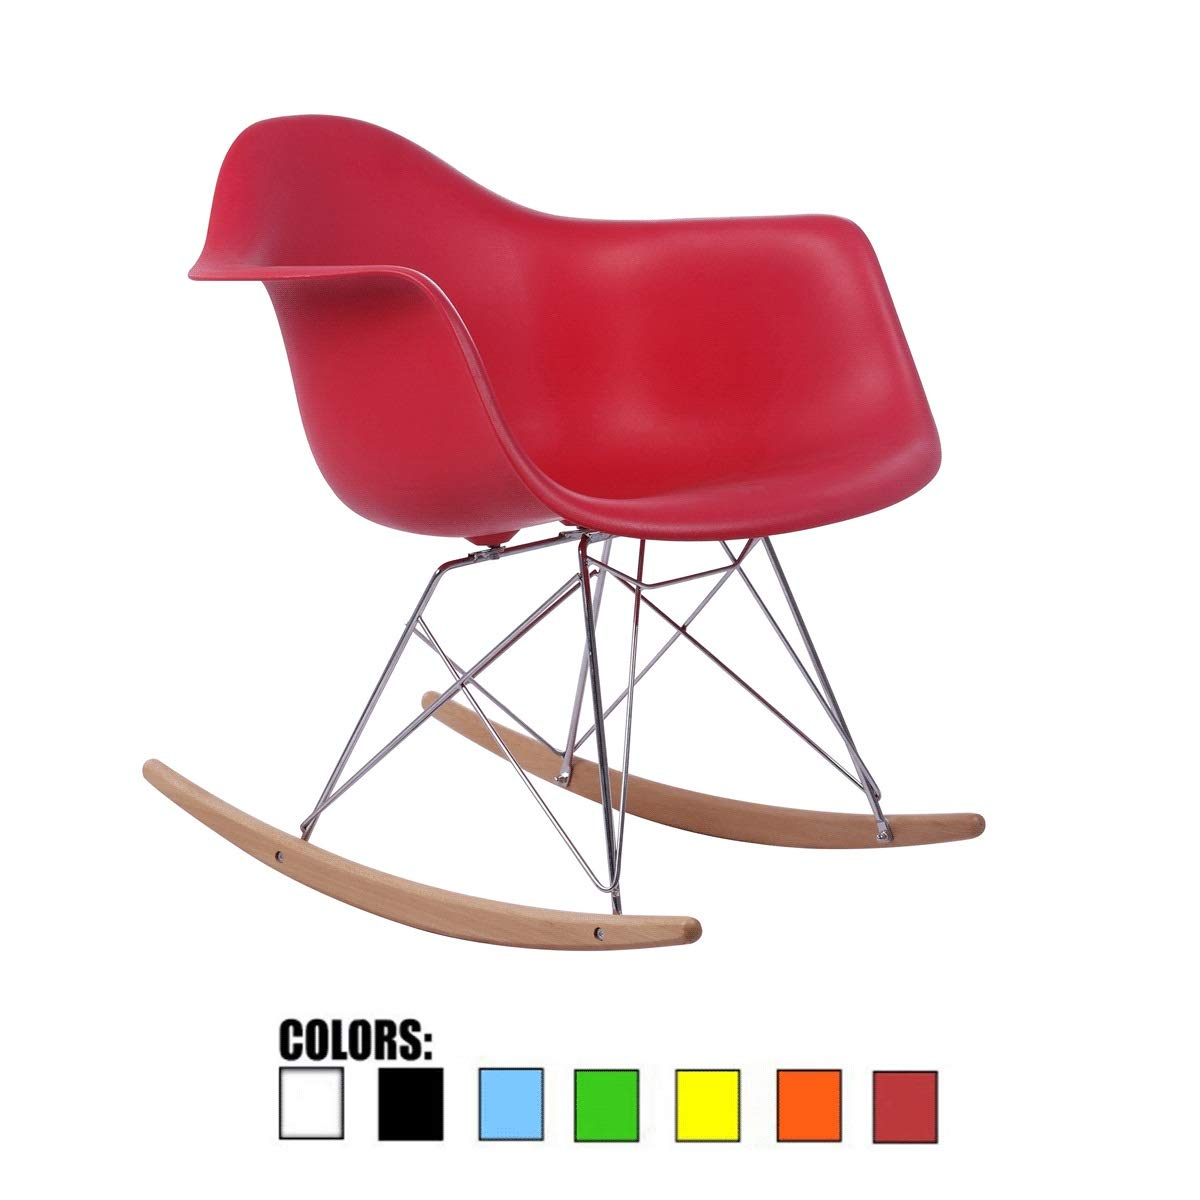 Red Rocking Chair, Creative Lazy Balcony Lounge Chair, Mid-Century Modern Contemporary Style,Plastic Accent Lounge Desk Rocker Furniture for Living Room, Outdoor Indoor Coffee Chair Bedroom Wood Legs